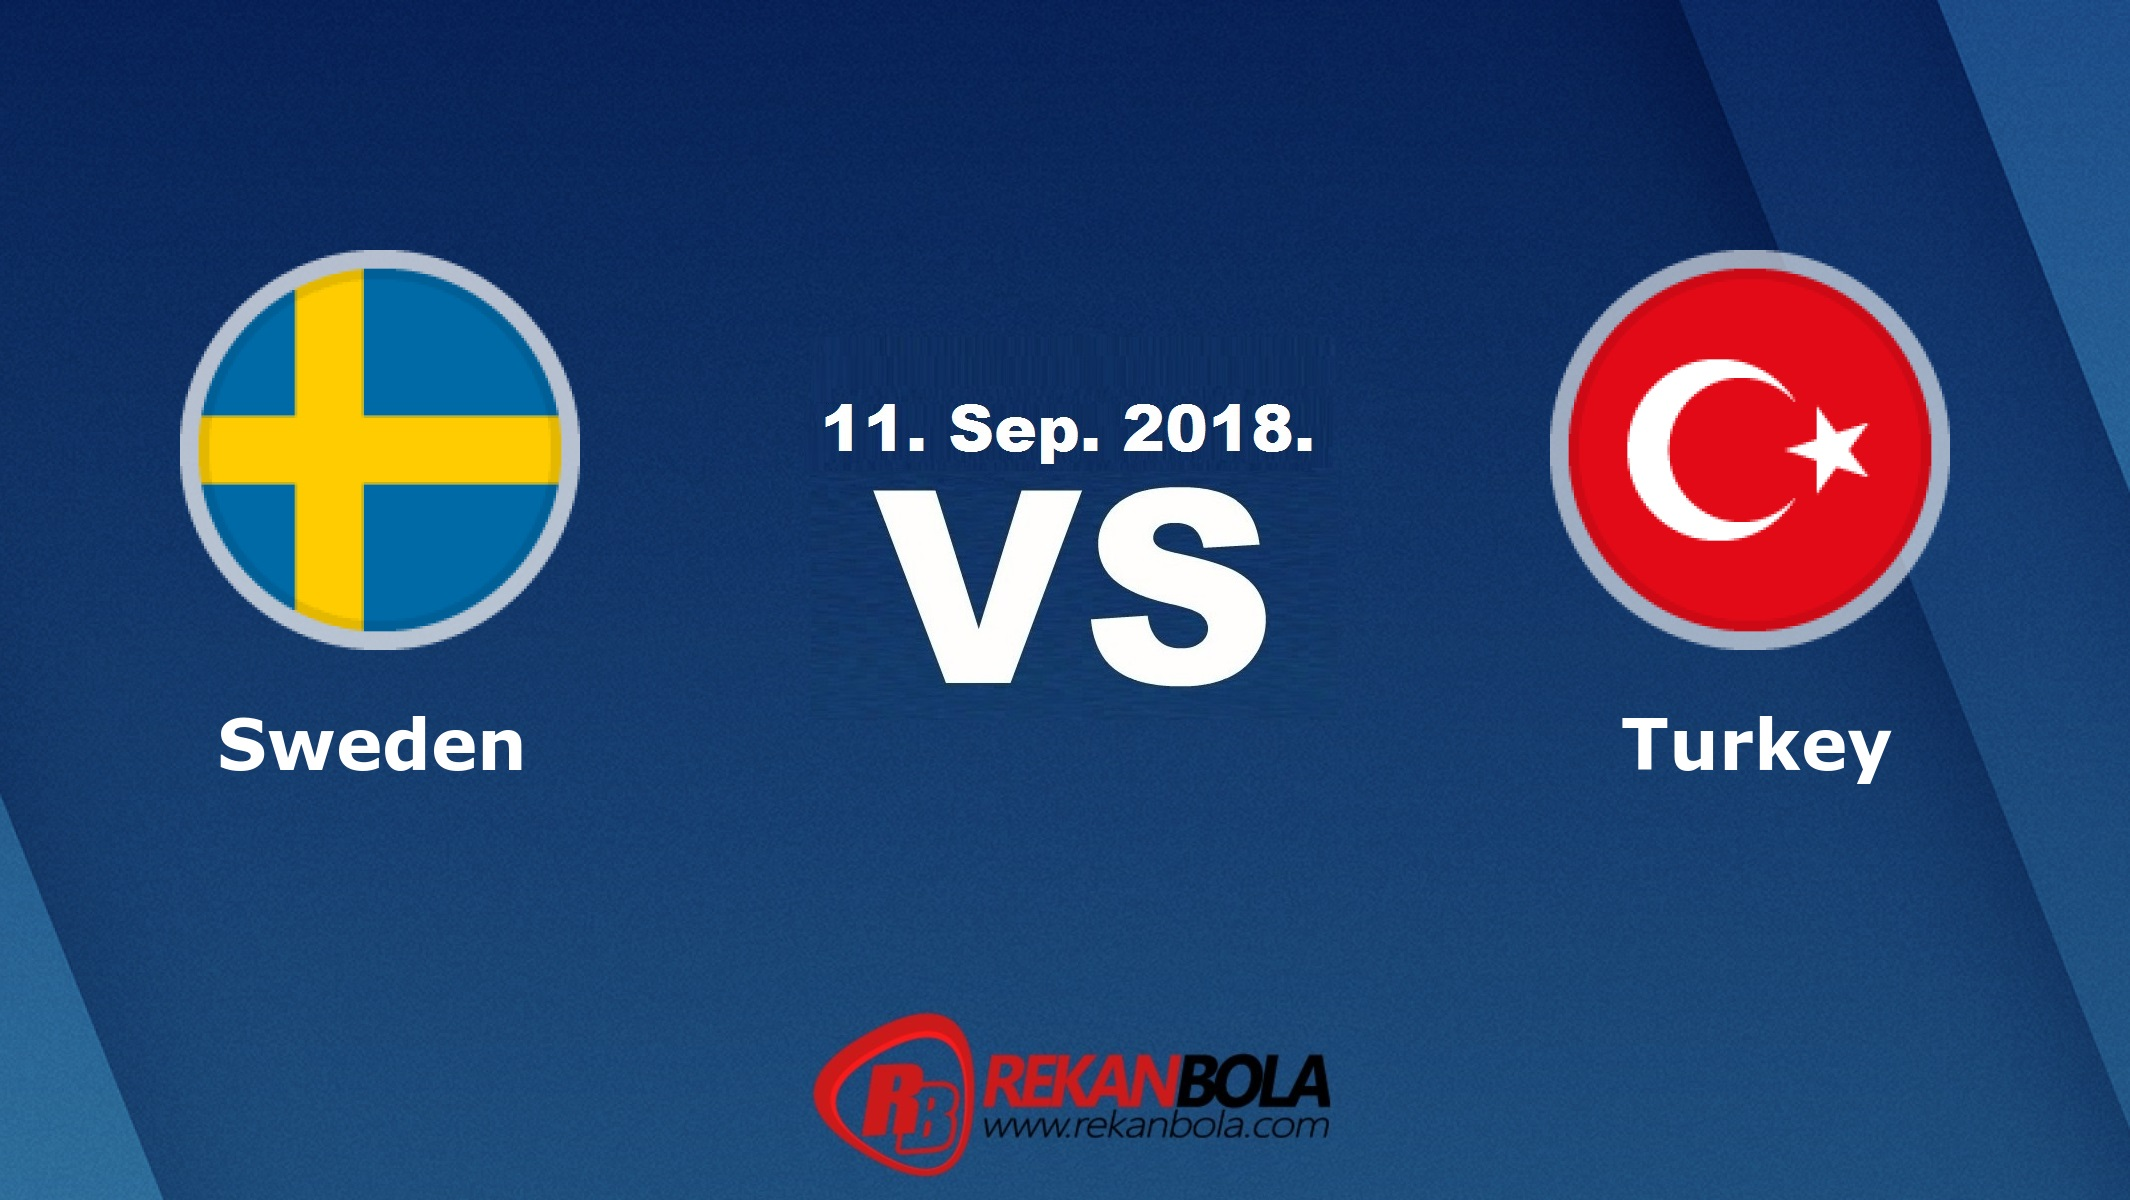 Nonton Siaran Live Streaming Swedia Vs Turki 11 September 2018